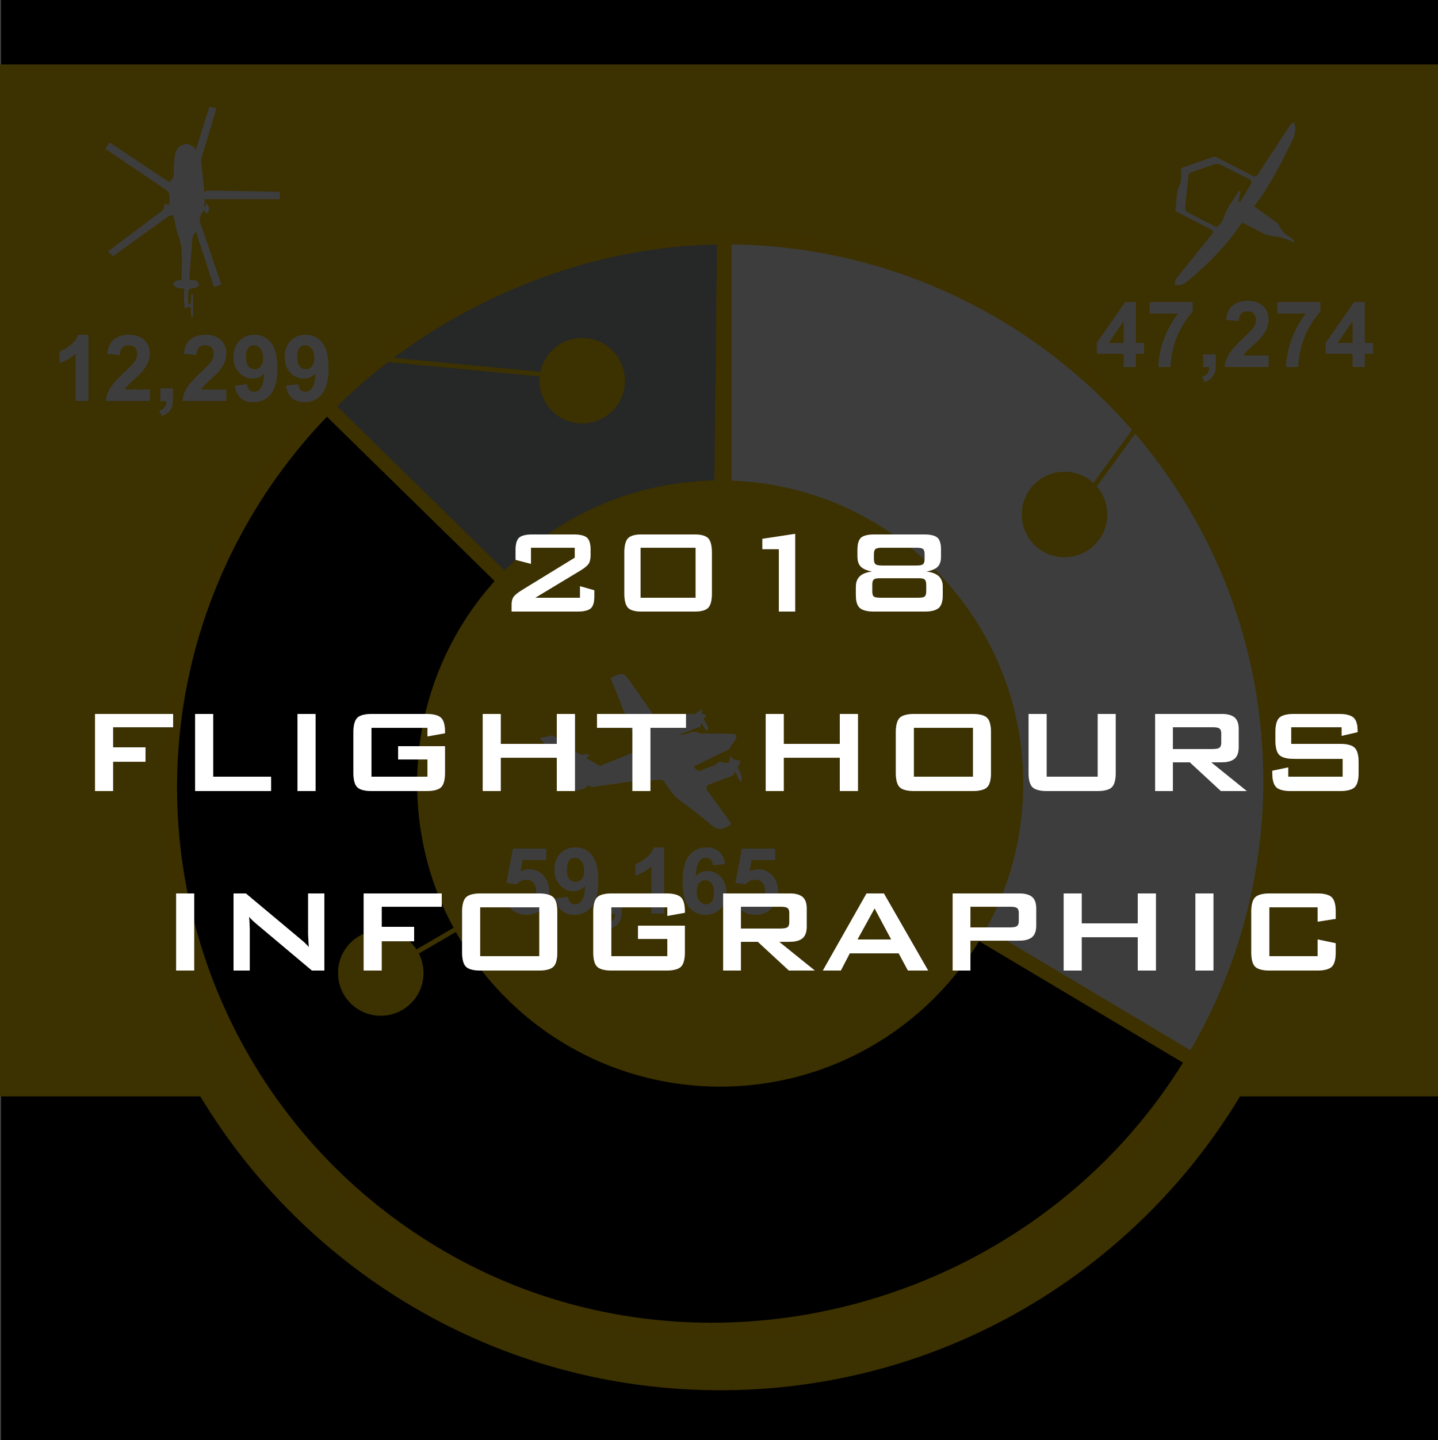 2018 Flight Hours Infographic